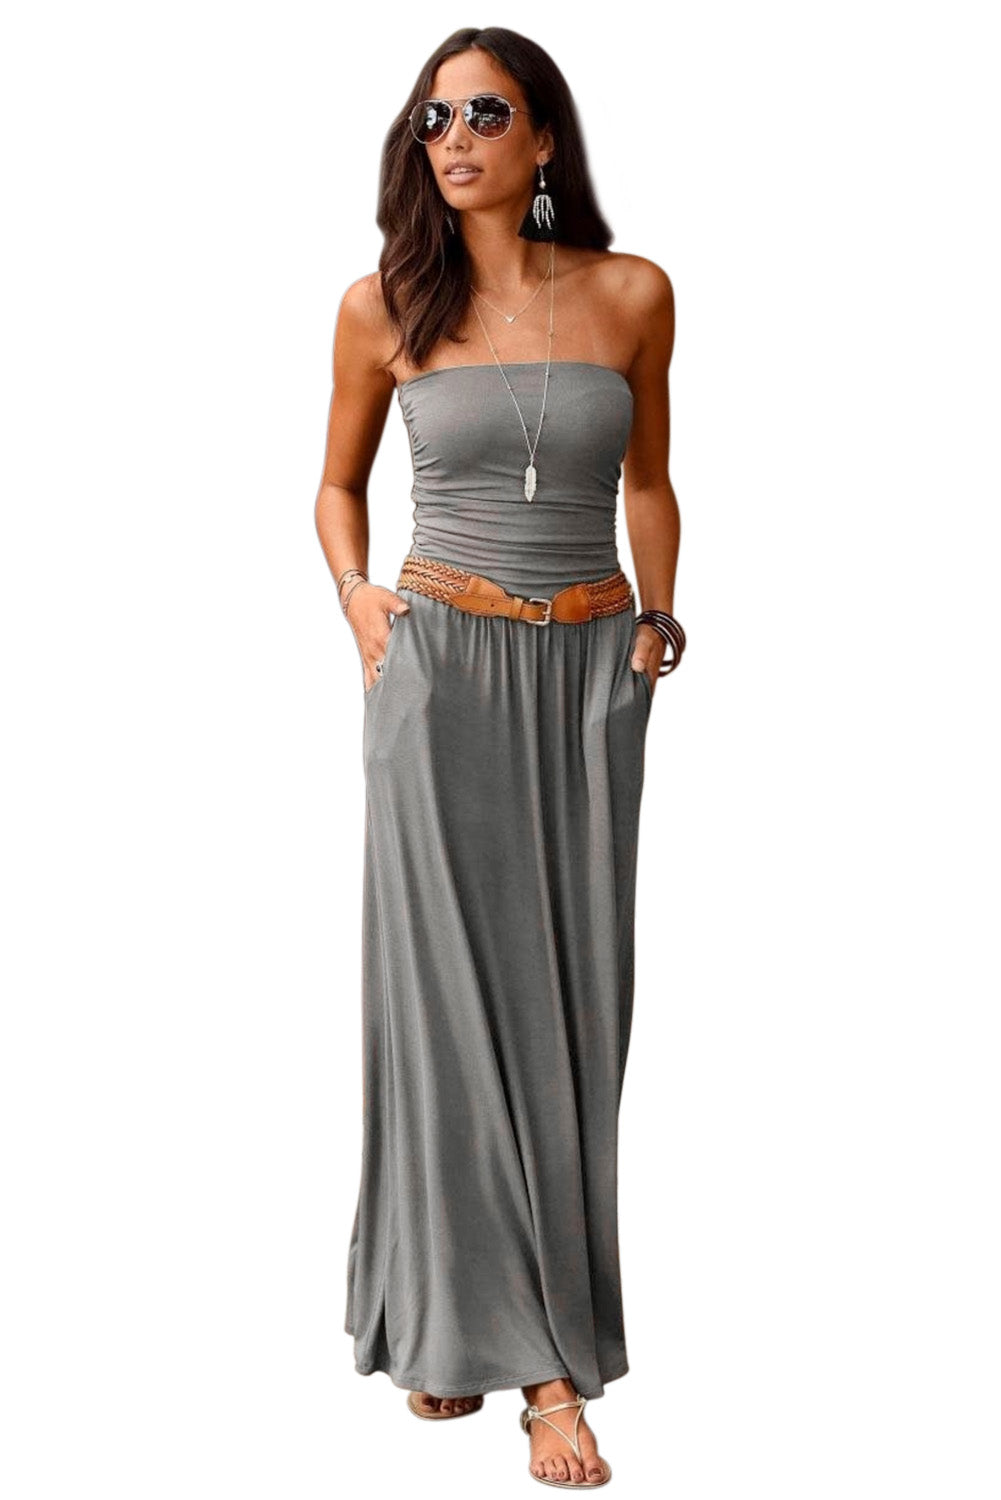 Gray Strapless Bodice Empire Waist Maxi Dress